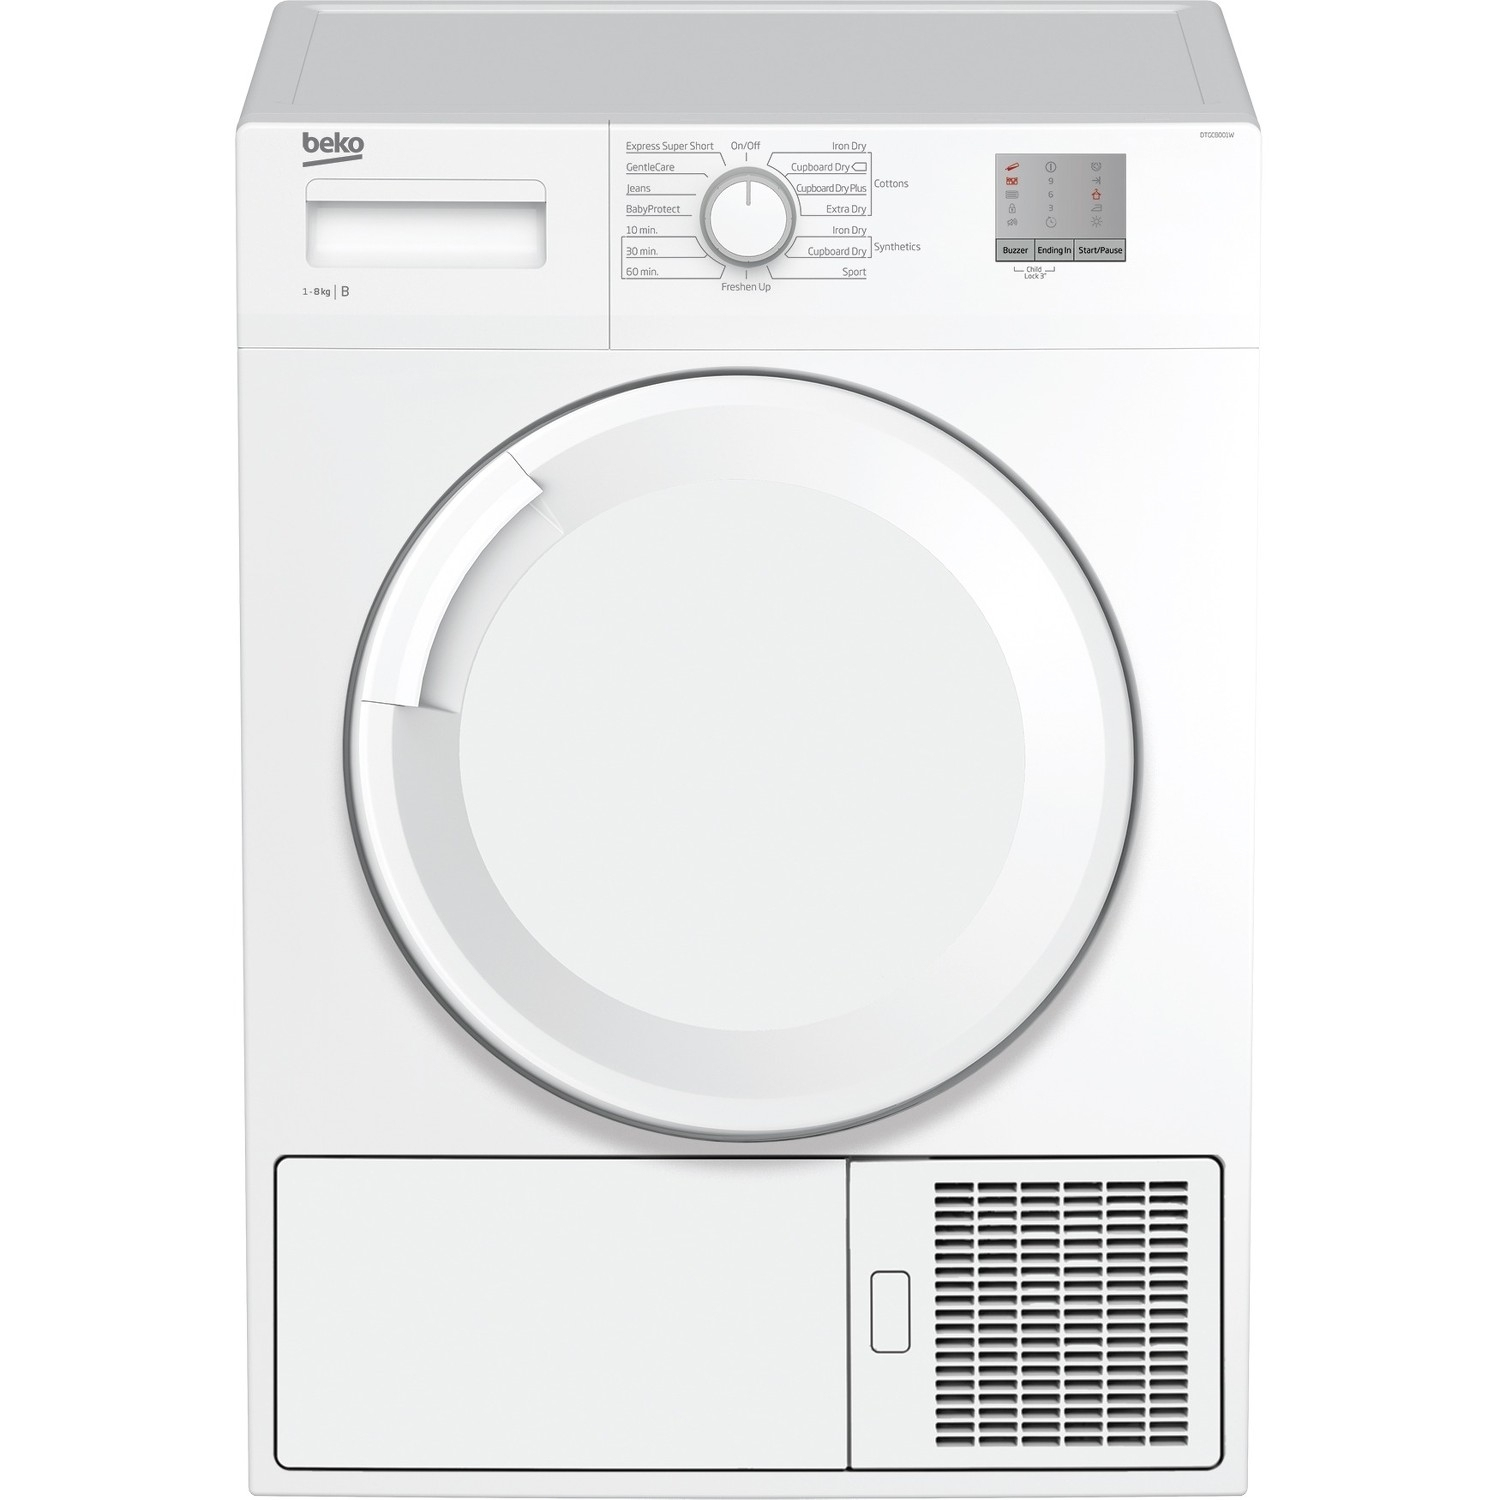 Beko 8kg Condenser Tumble Dryer - White - B Rated - 0